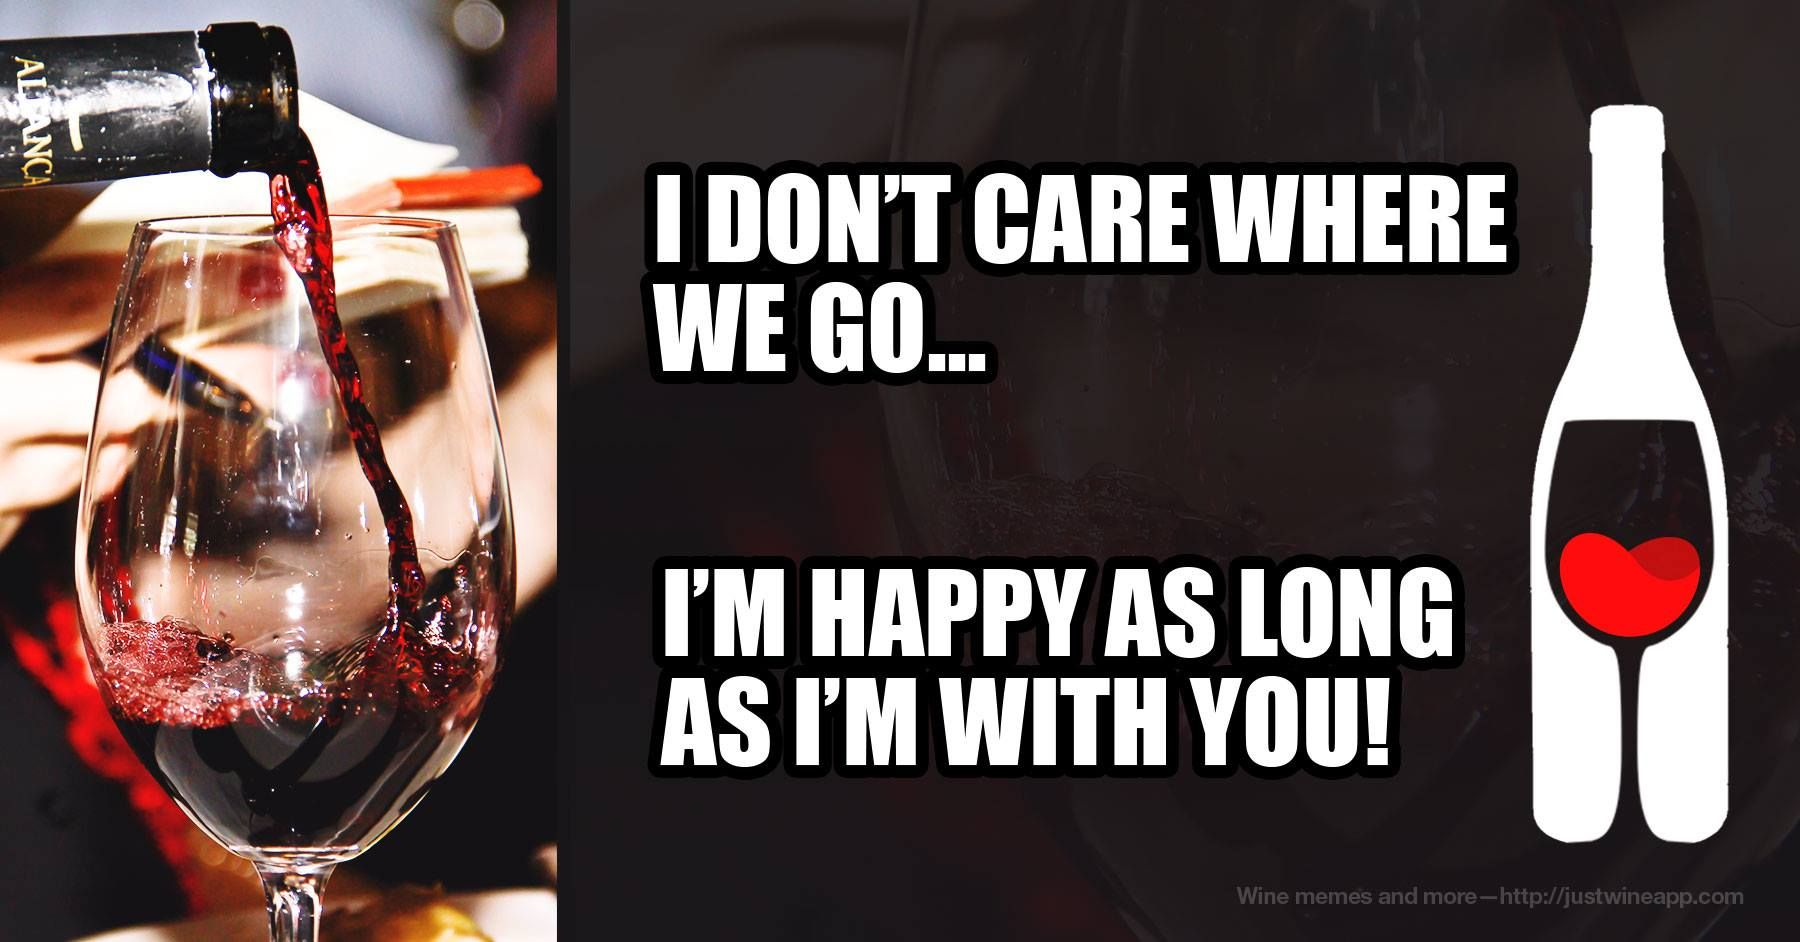 Wine is just happy juice made of grapes!